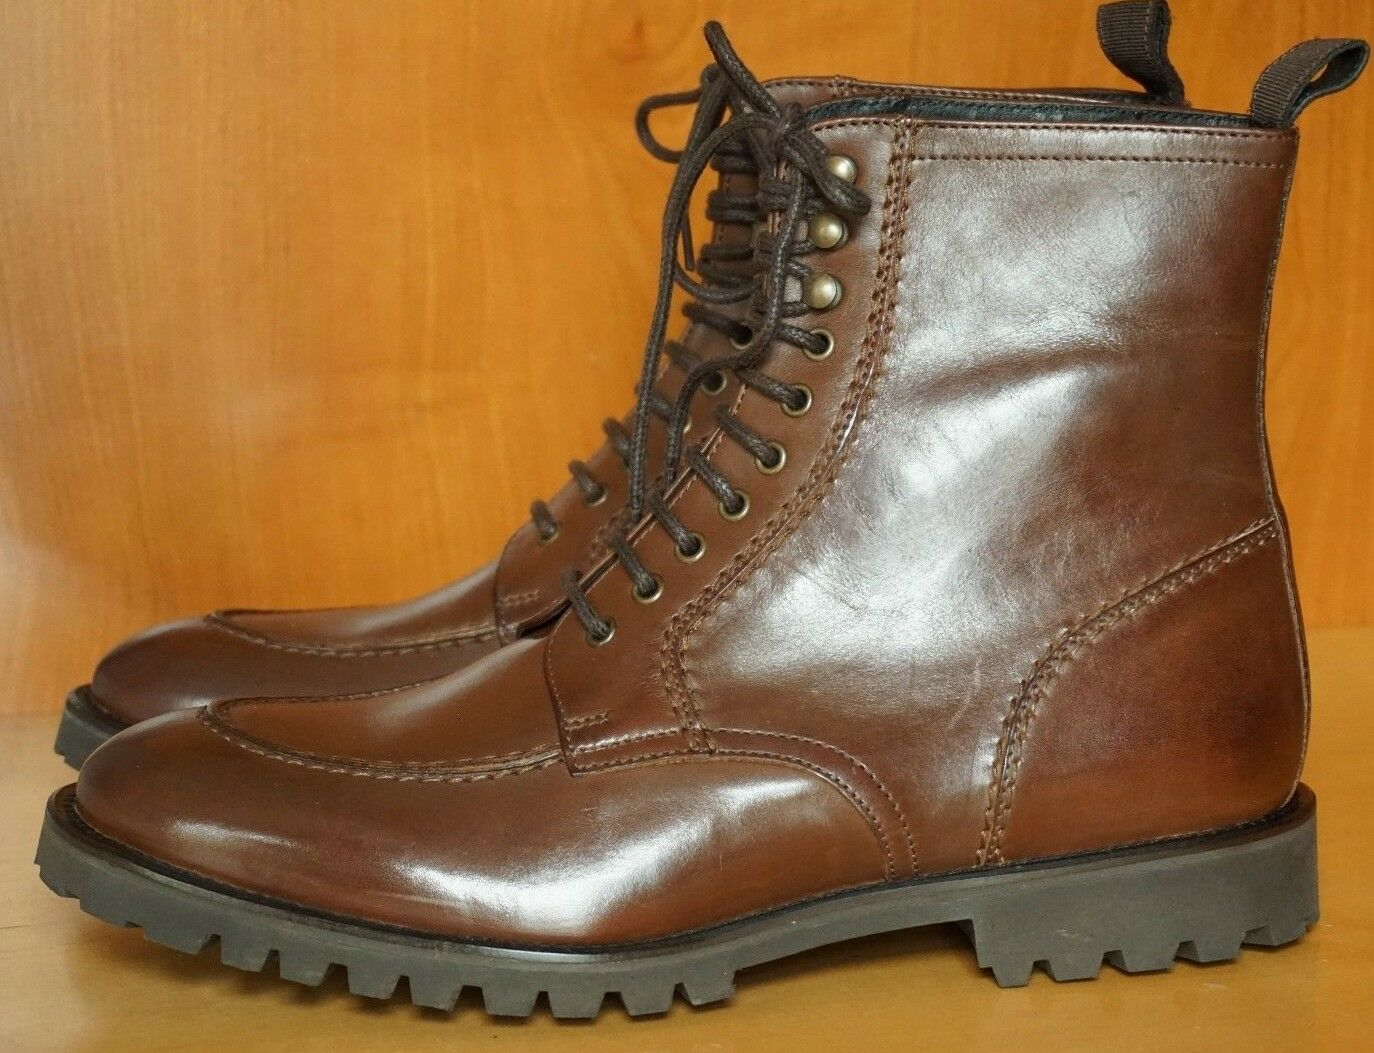 NEW WITH BOX! THE KOOPLES APRON STITCHED MOC TOE BOOT FRANKENSTITCH COMMANDO